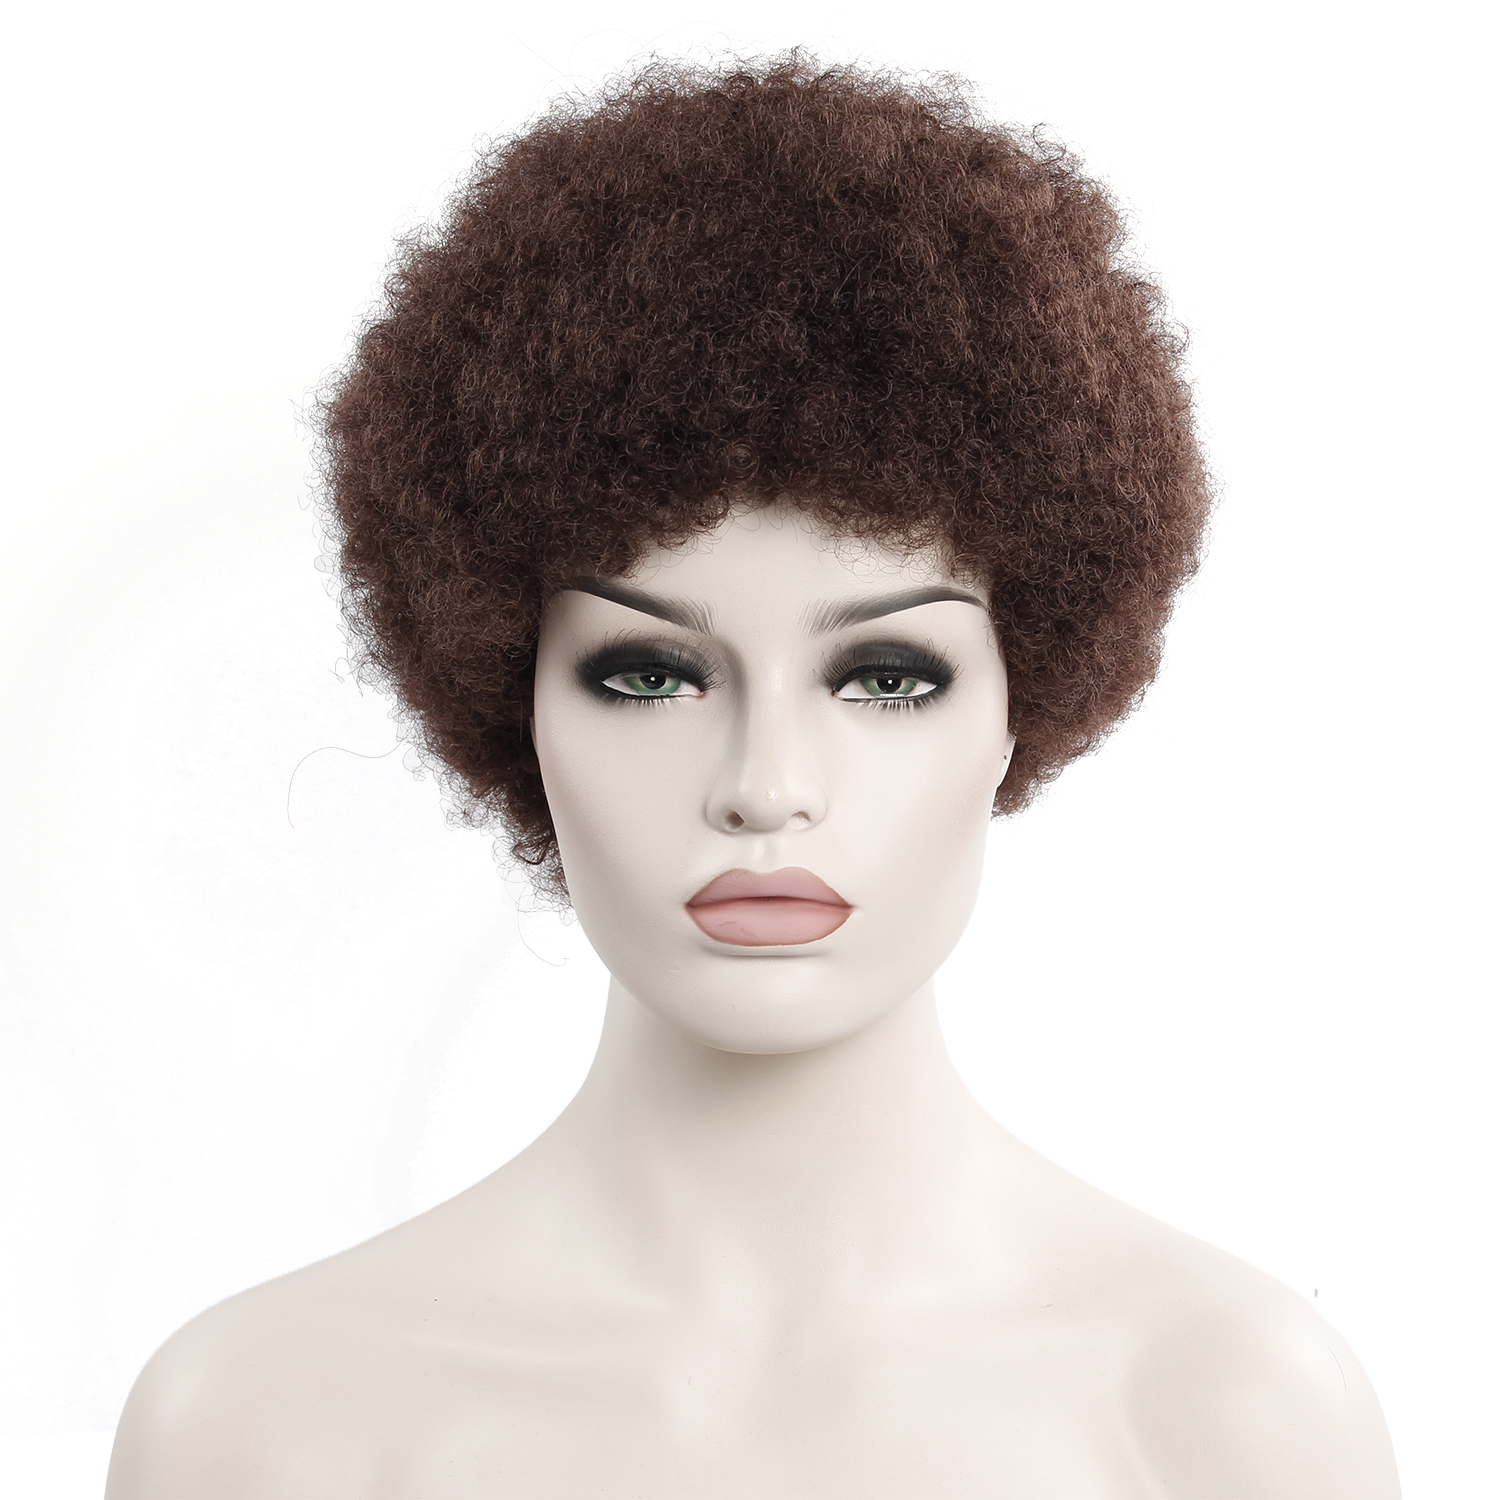 Afro Wig Mens Curly Hair Brown Synthetic Retro Wigs For Women Fluffy Wigs For Women Black Hair